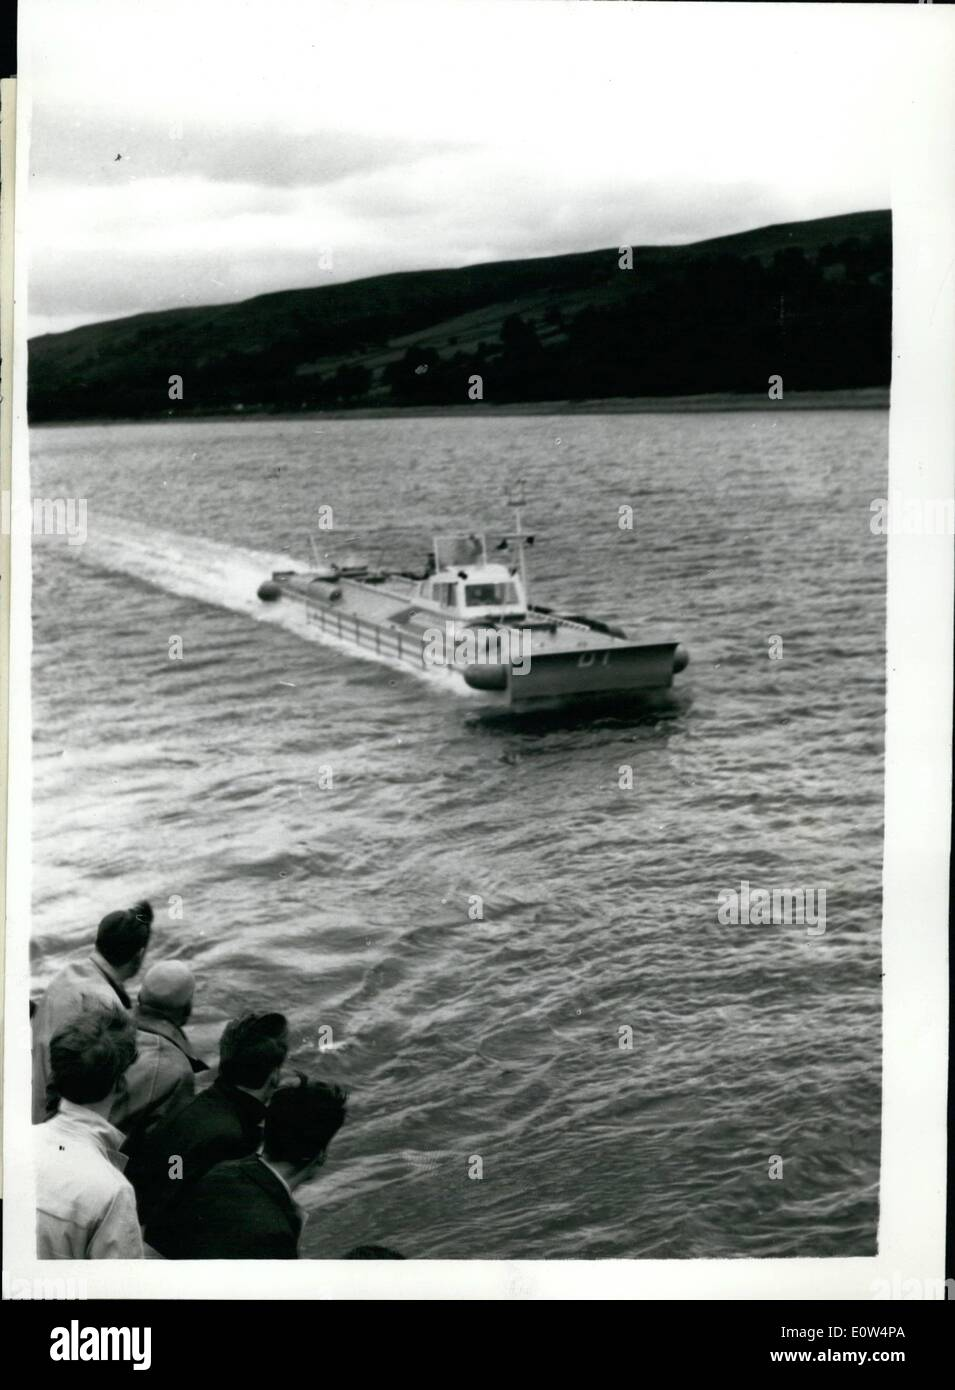 Jun. 06, 1961 - Britain's first ''Hovership'' - makes its Public debut, It just floats across top of the water..70 Passengers; Britain's first ''Hovership'' - built by William Denny an Brothers Ltd., in collaboration with Hovercraft Development Ltd., made its first public debut yesterday - on Gareloch, near Dumbarton. The 4 1/2 ton machine is the first phase of an intensive research program being undertaken to produce a passenger carrying hoverferry b y next year - Stock Image